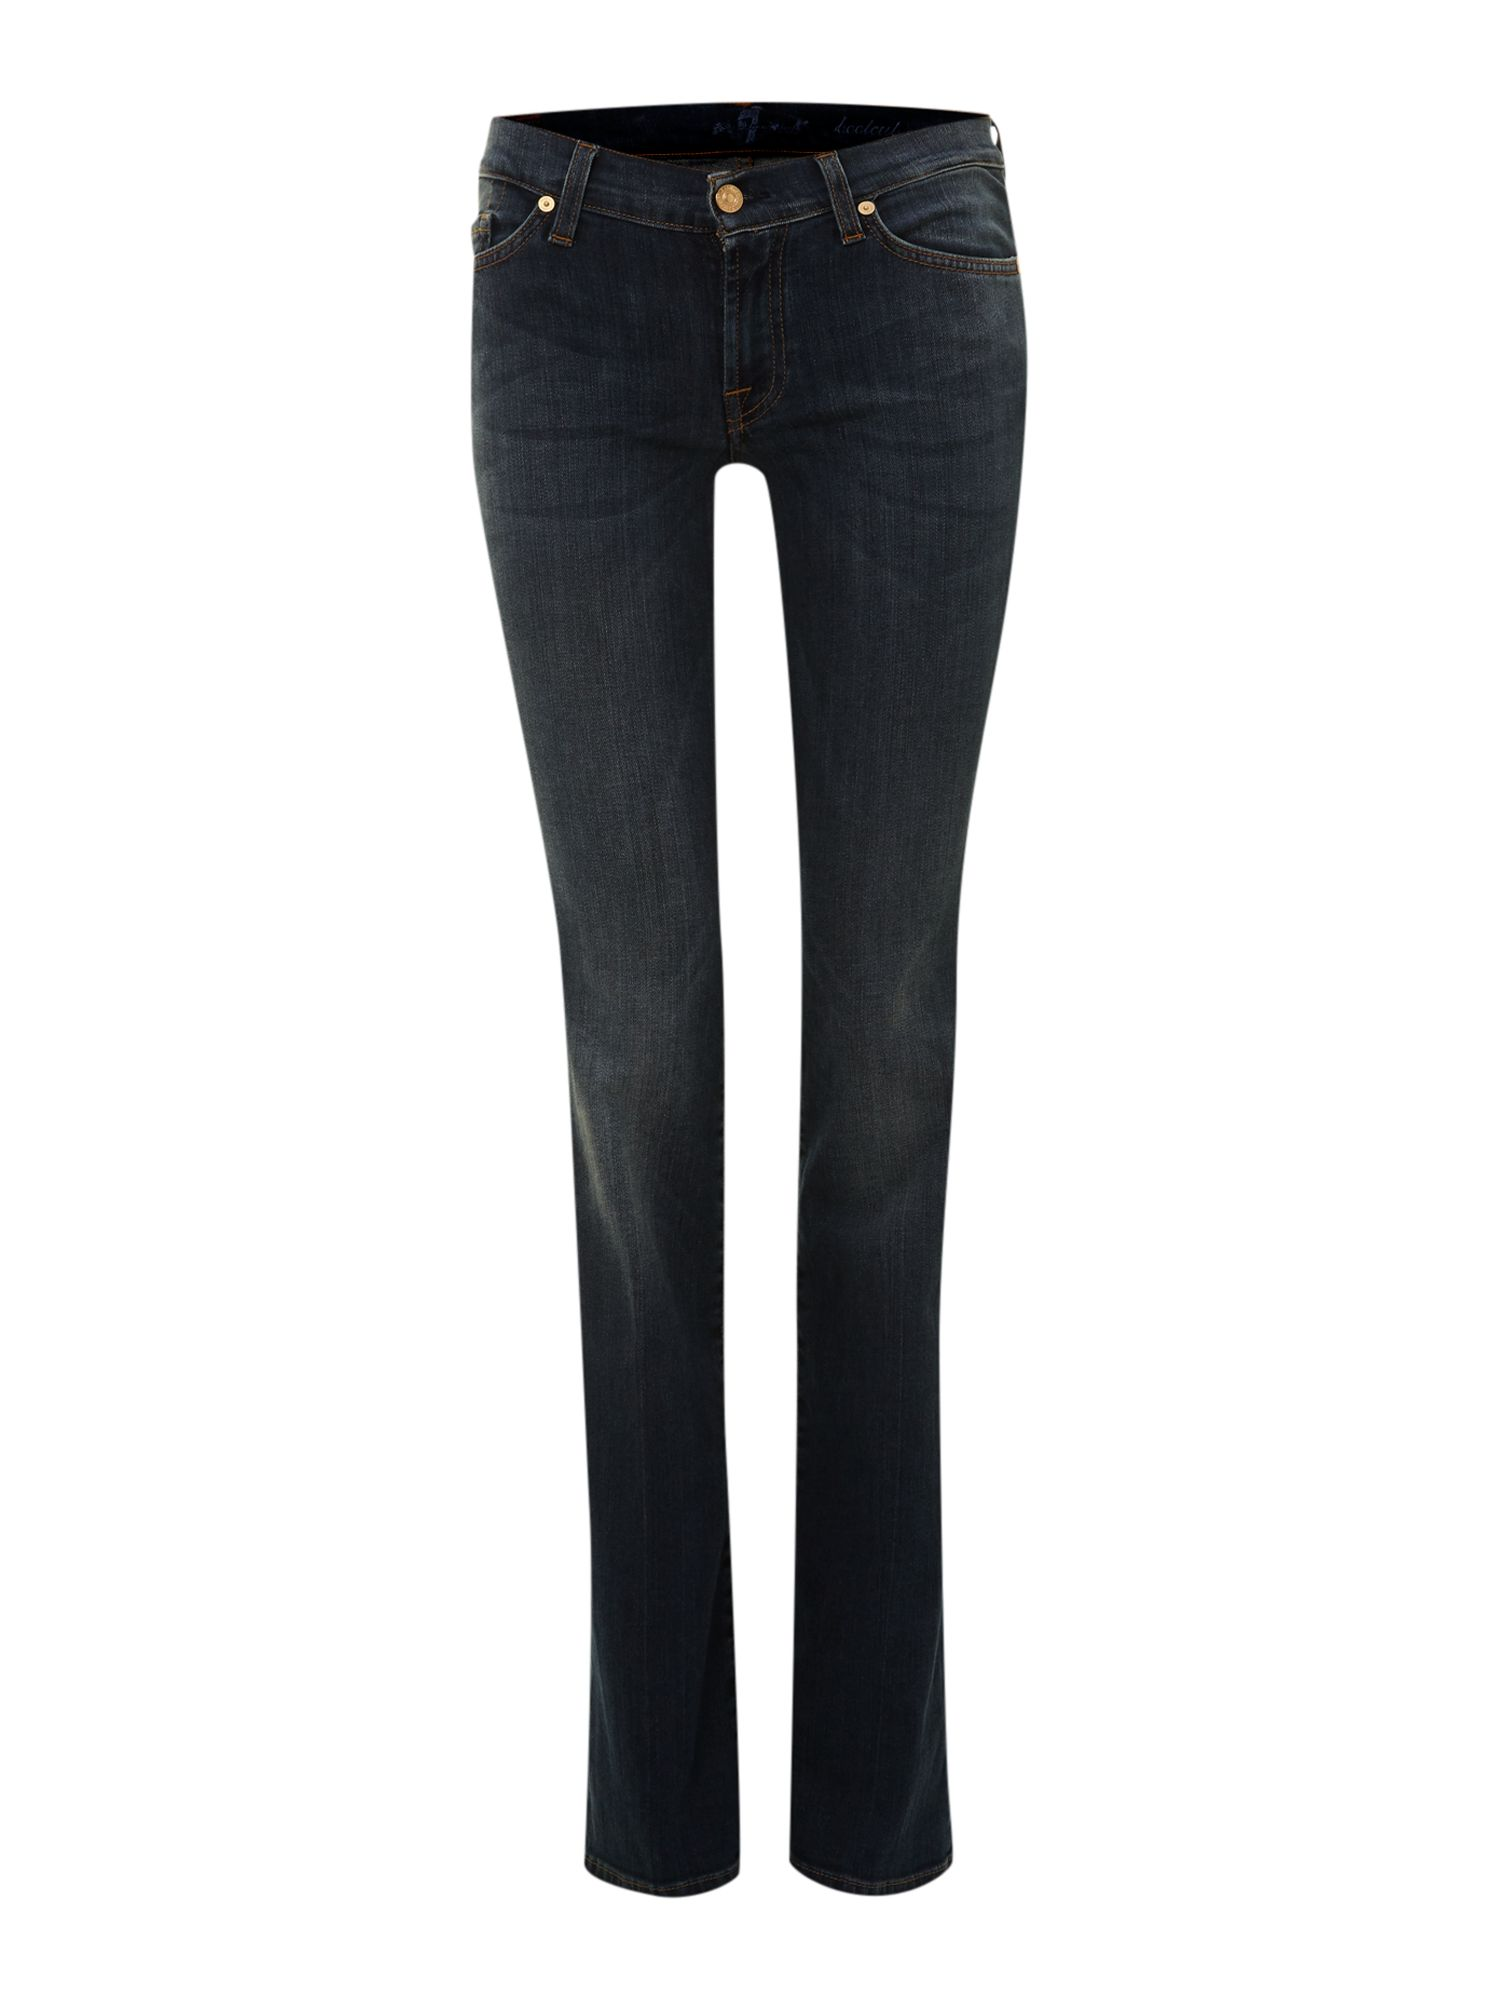 Bootcut jeans in Manhattan Dark